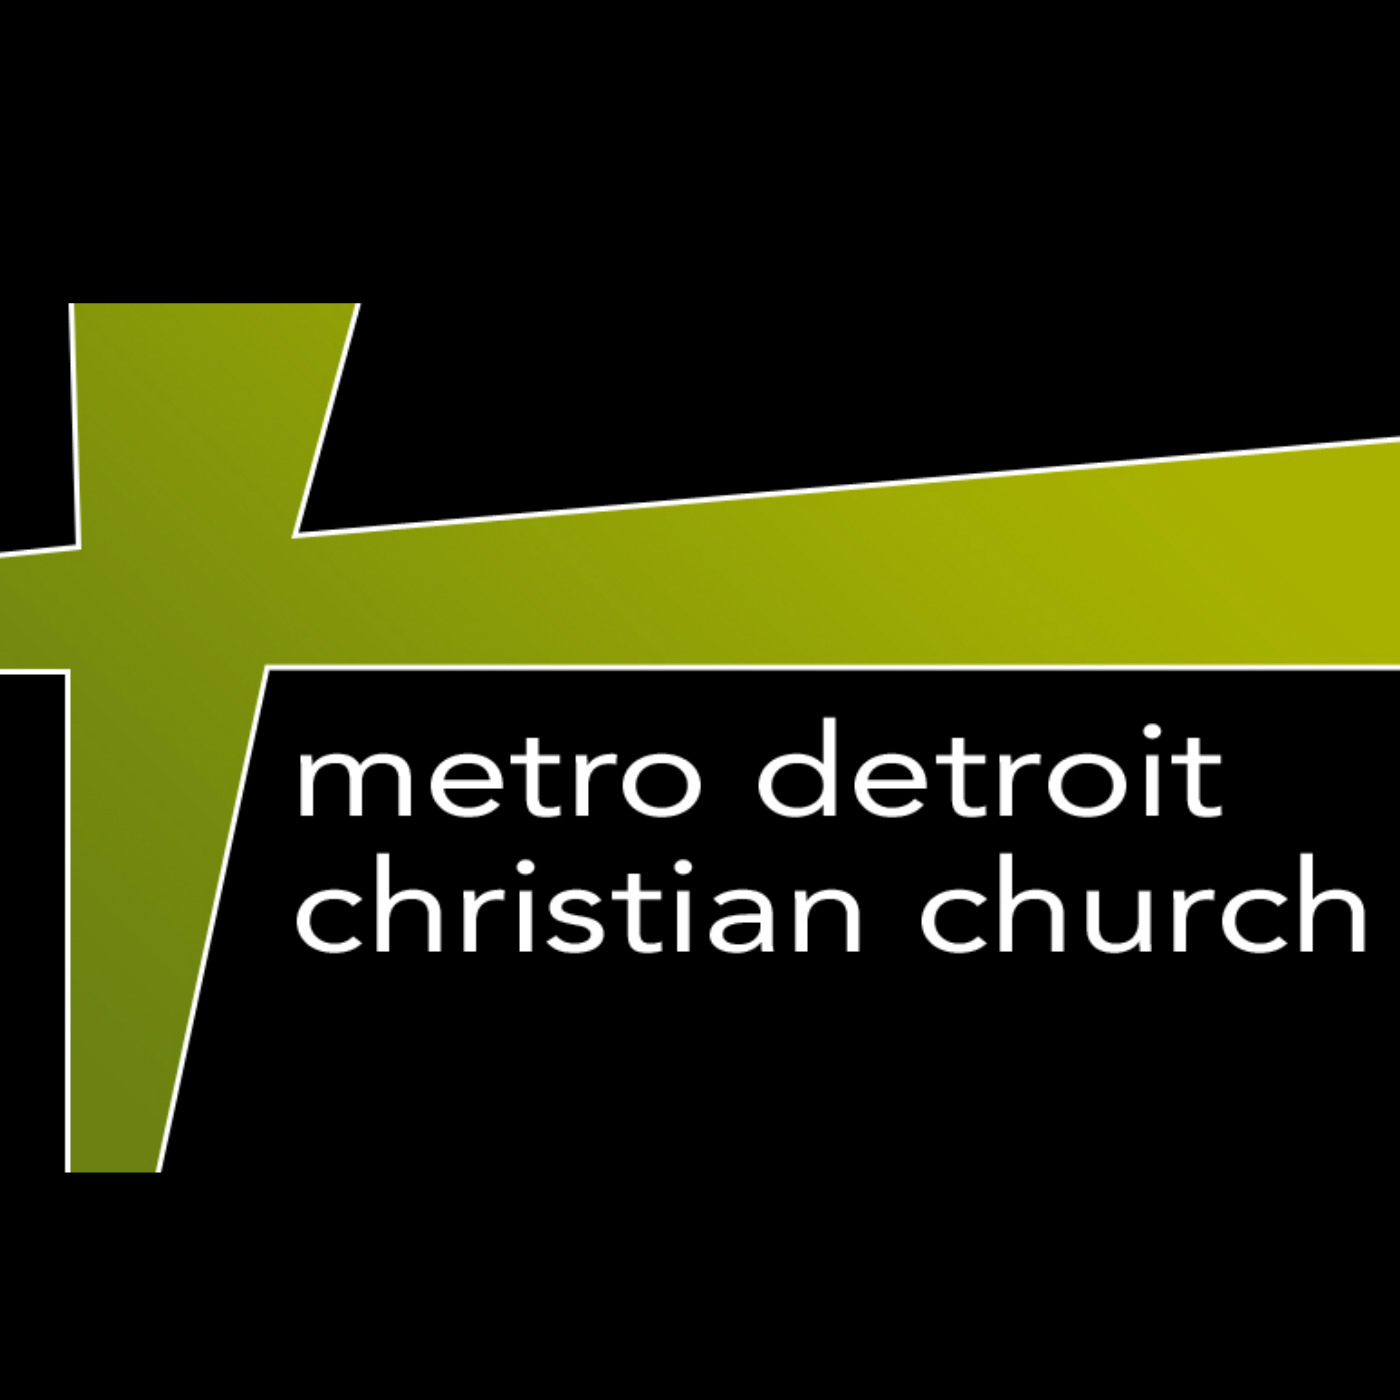 Metro Detroit Christian Church